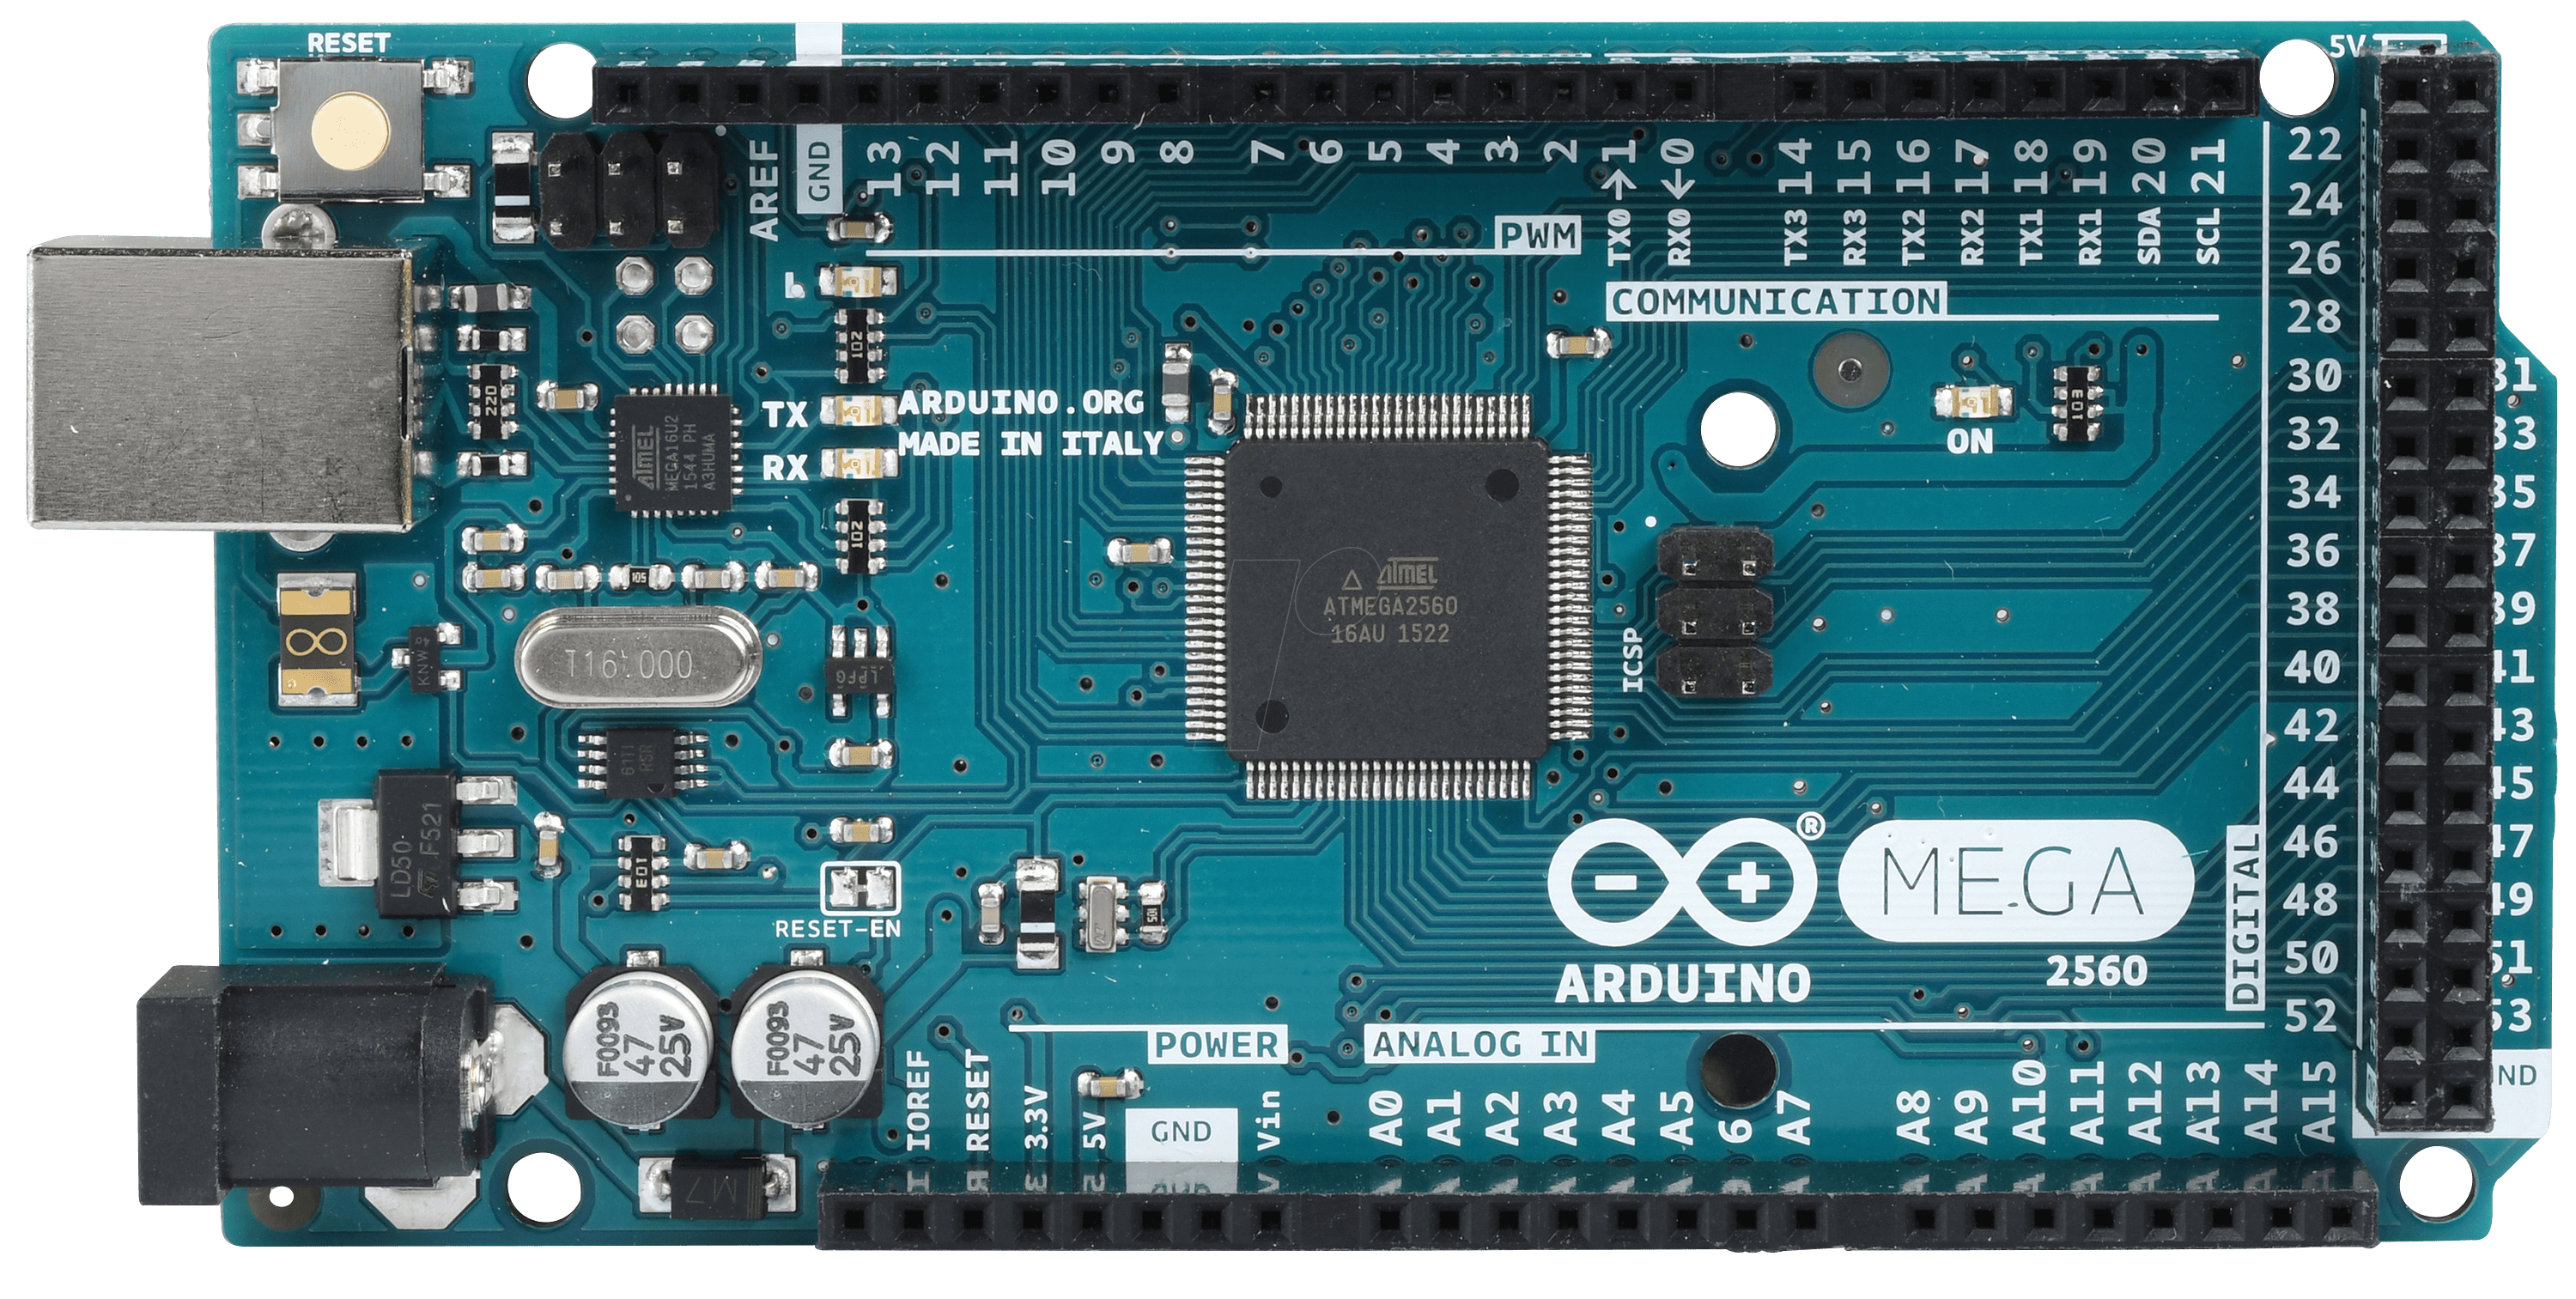 Arduino mega atmega usb at